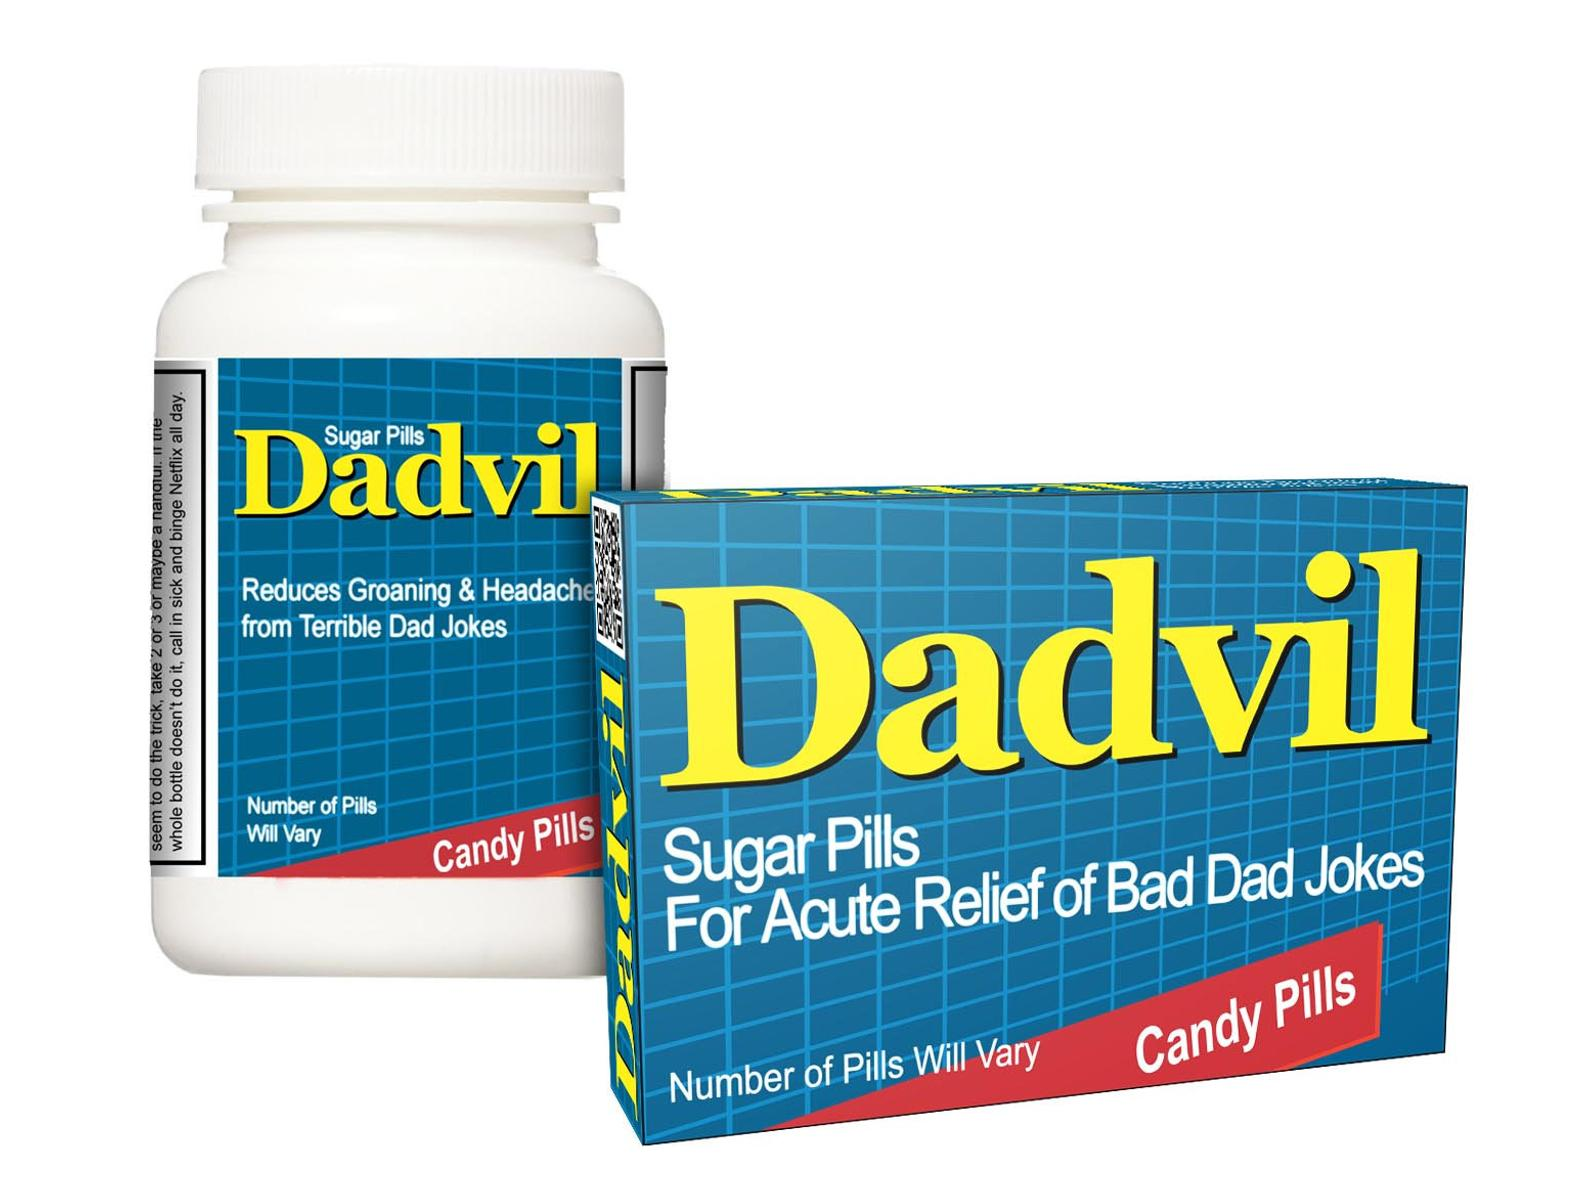 gifts-for-dad-from-daughter-dad-joke-medicine